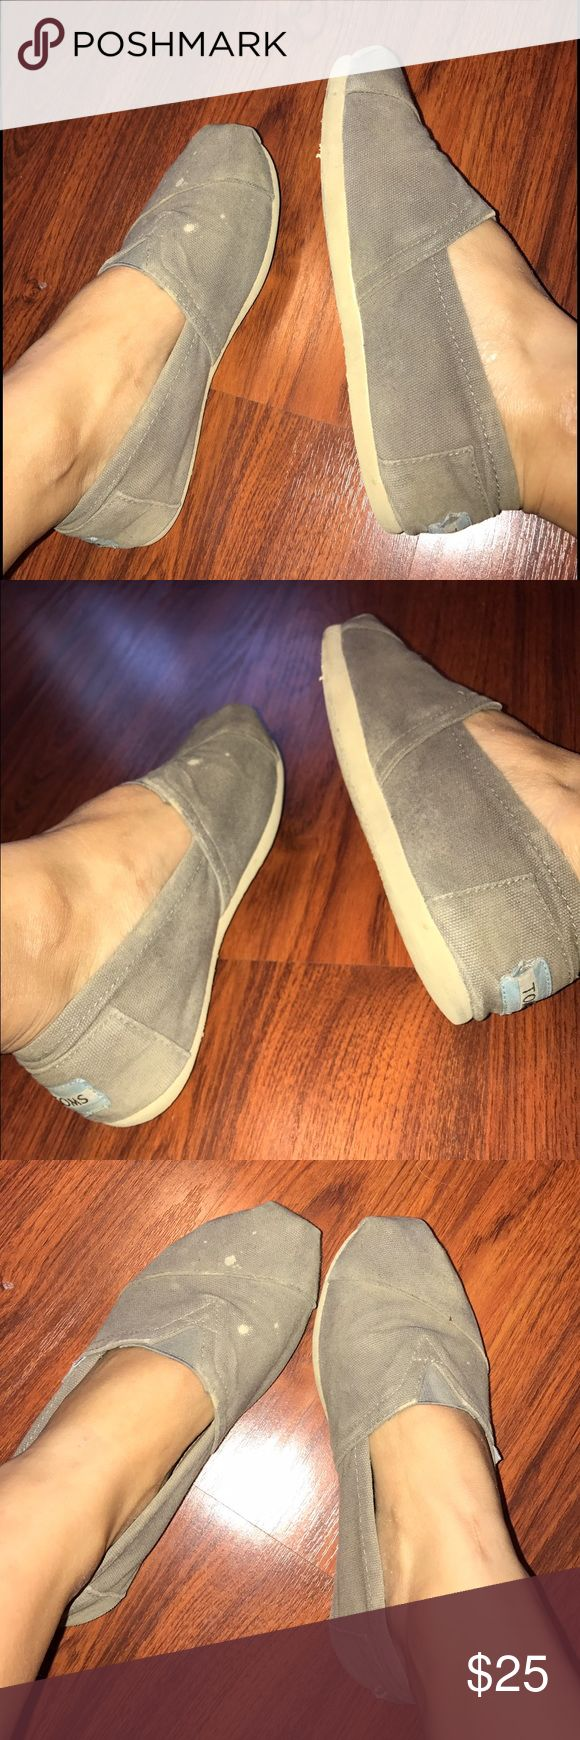 Gray TOMS Good condition, worn. Has a few bleach splash marks on the left shoe. Extremely comfortable and perfect with any attire. TOMS Shoes Flats & Loafers